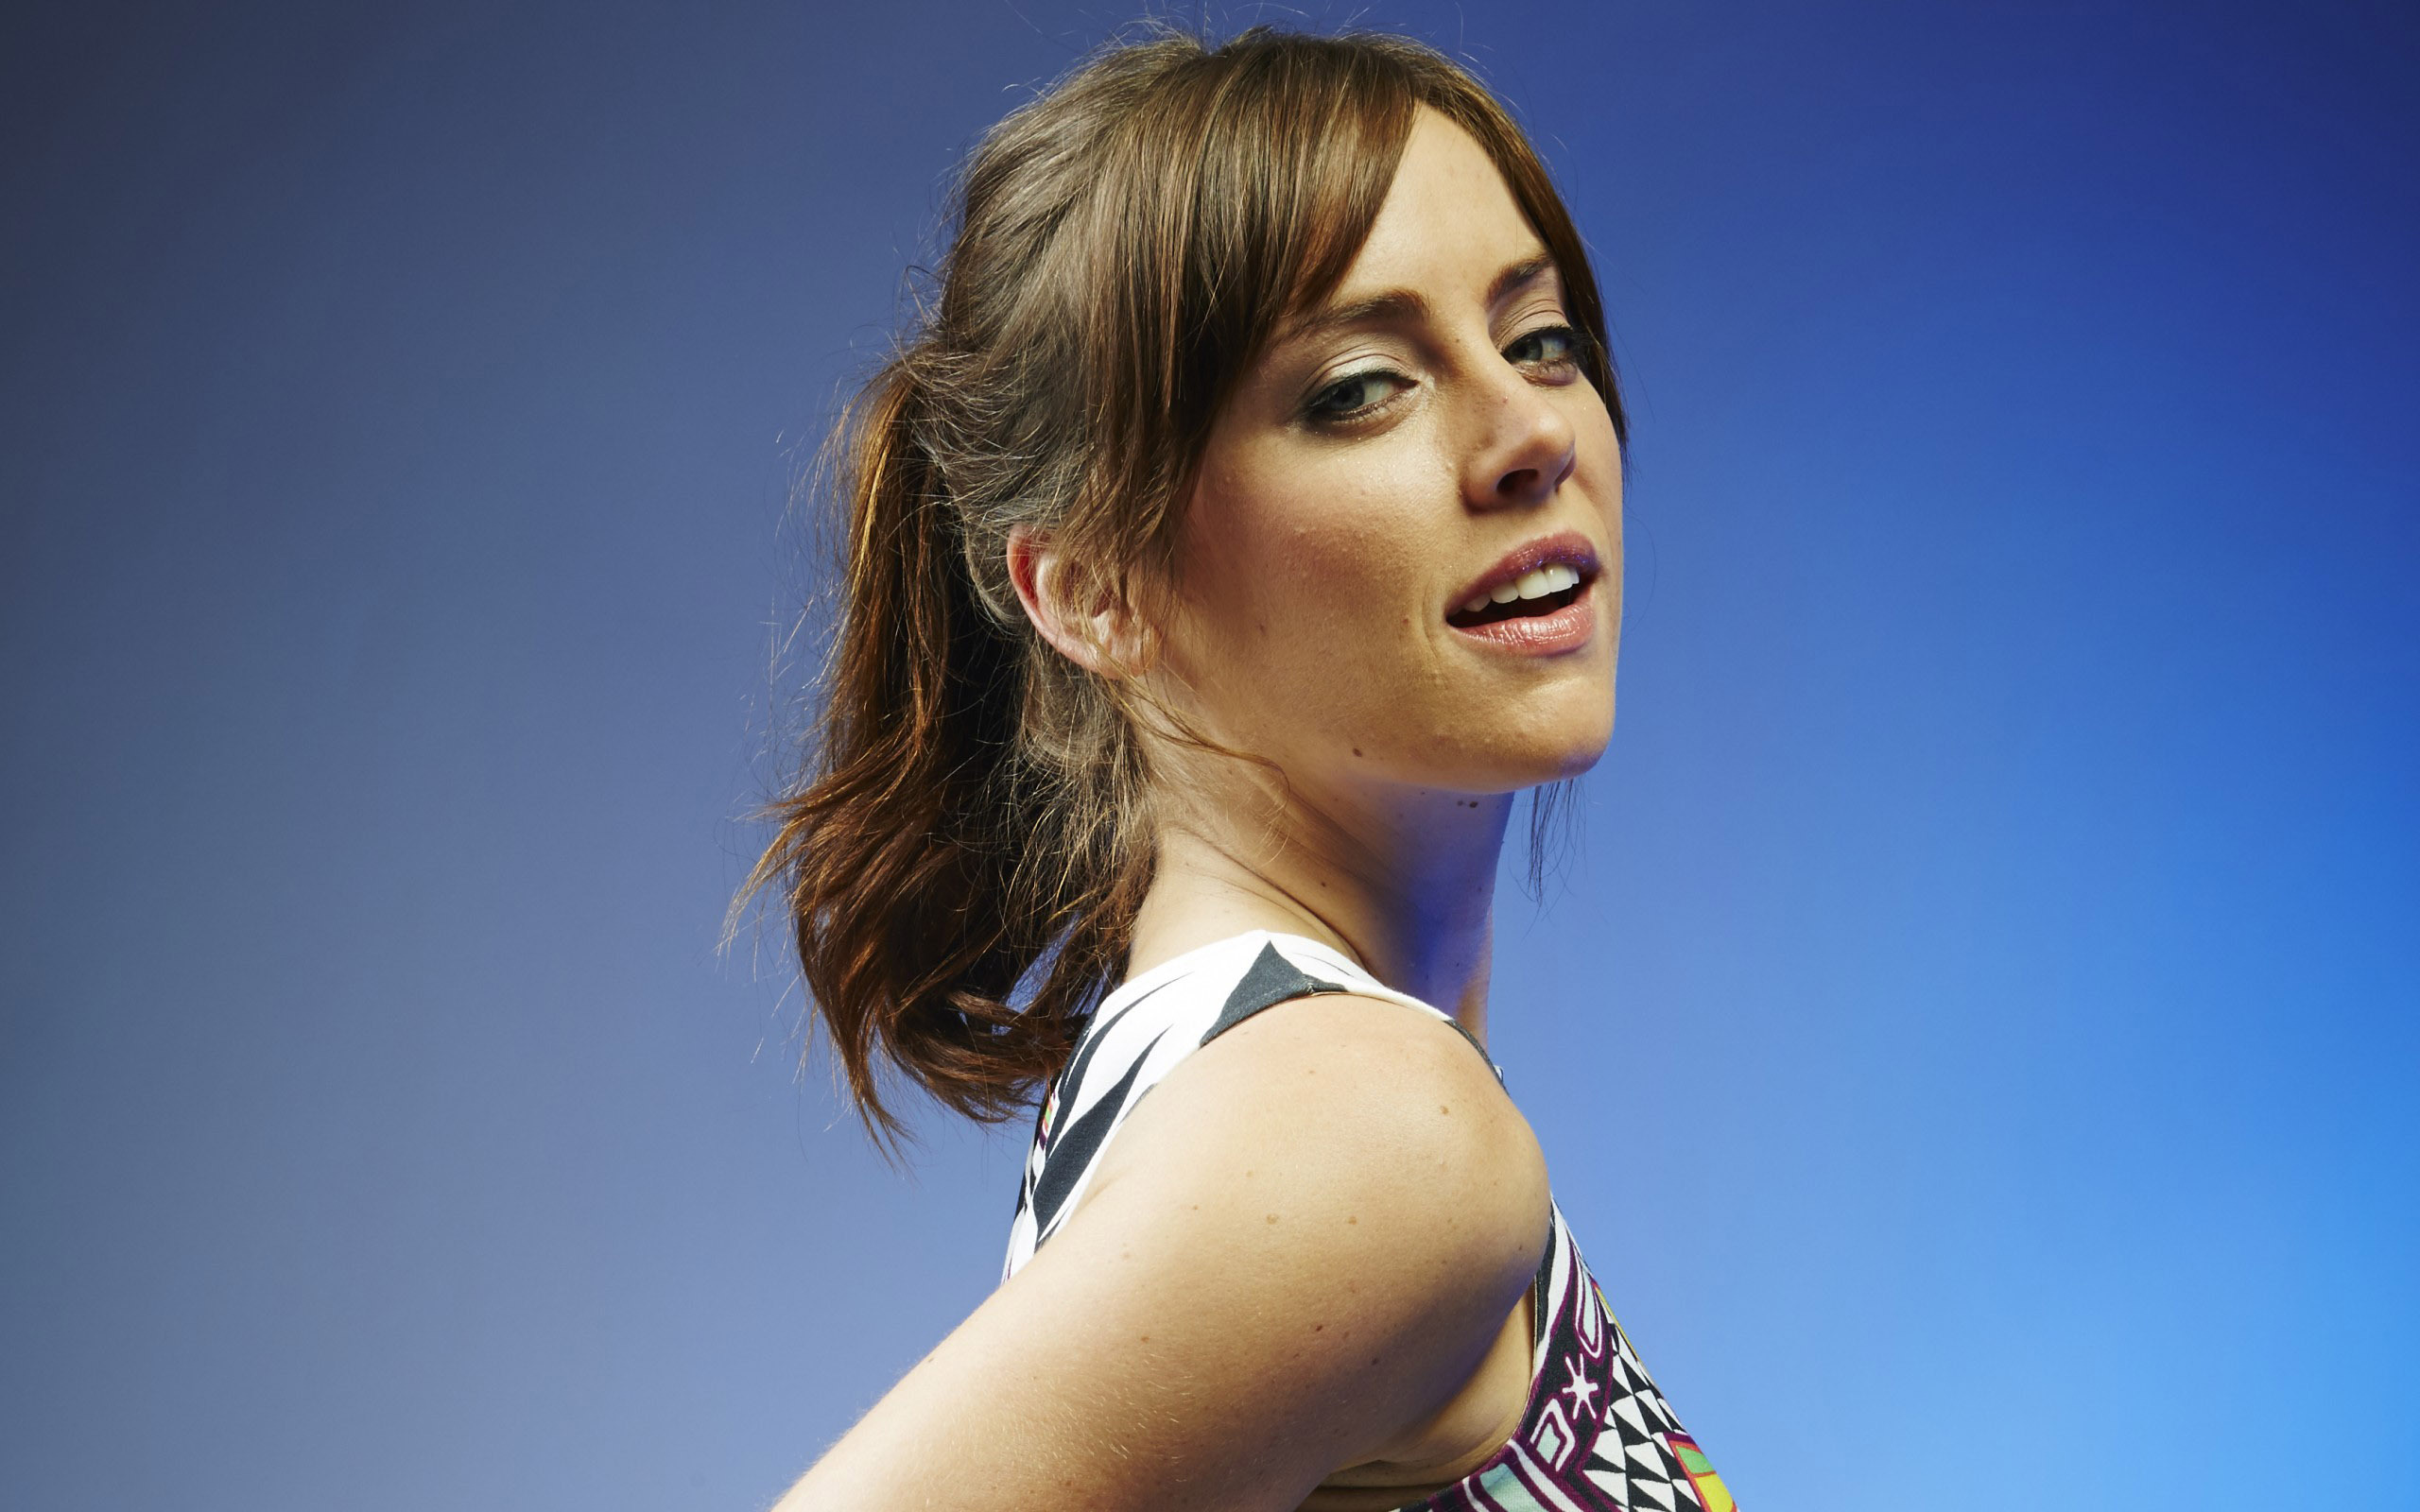 2560x1600 - Jessica Stroup Wallpapers 1